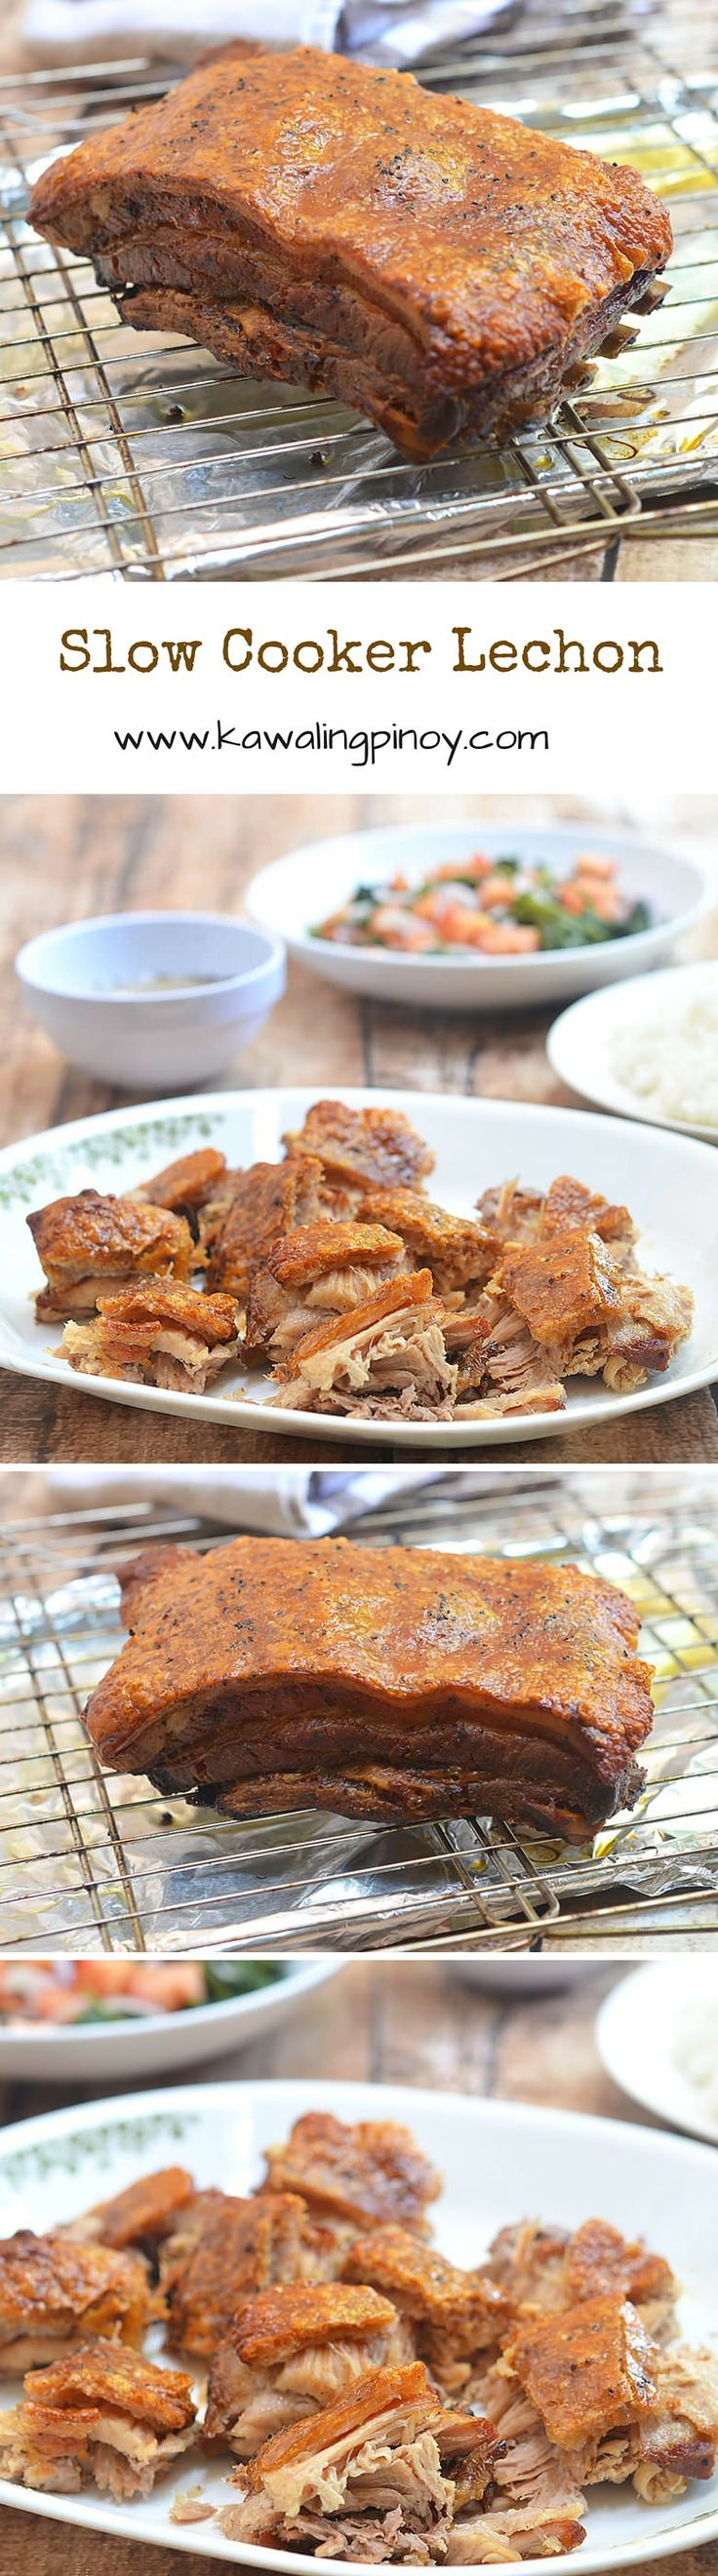 Moist and juicy on the inside, and golden and crunchy on the outside, this Slow Cooker Lechon is done in the crockpot!